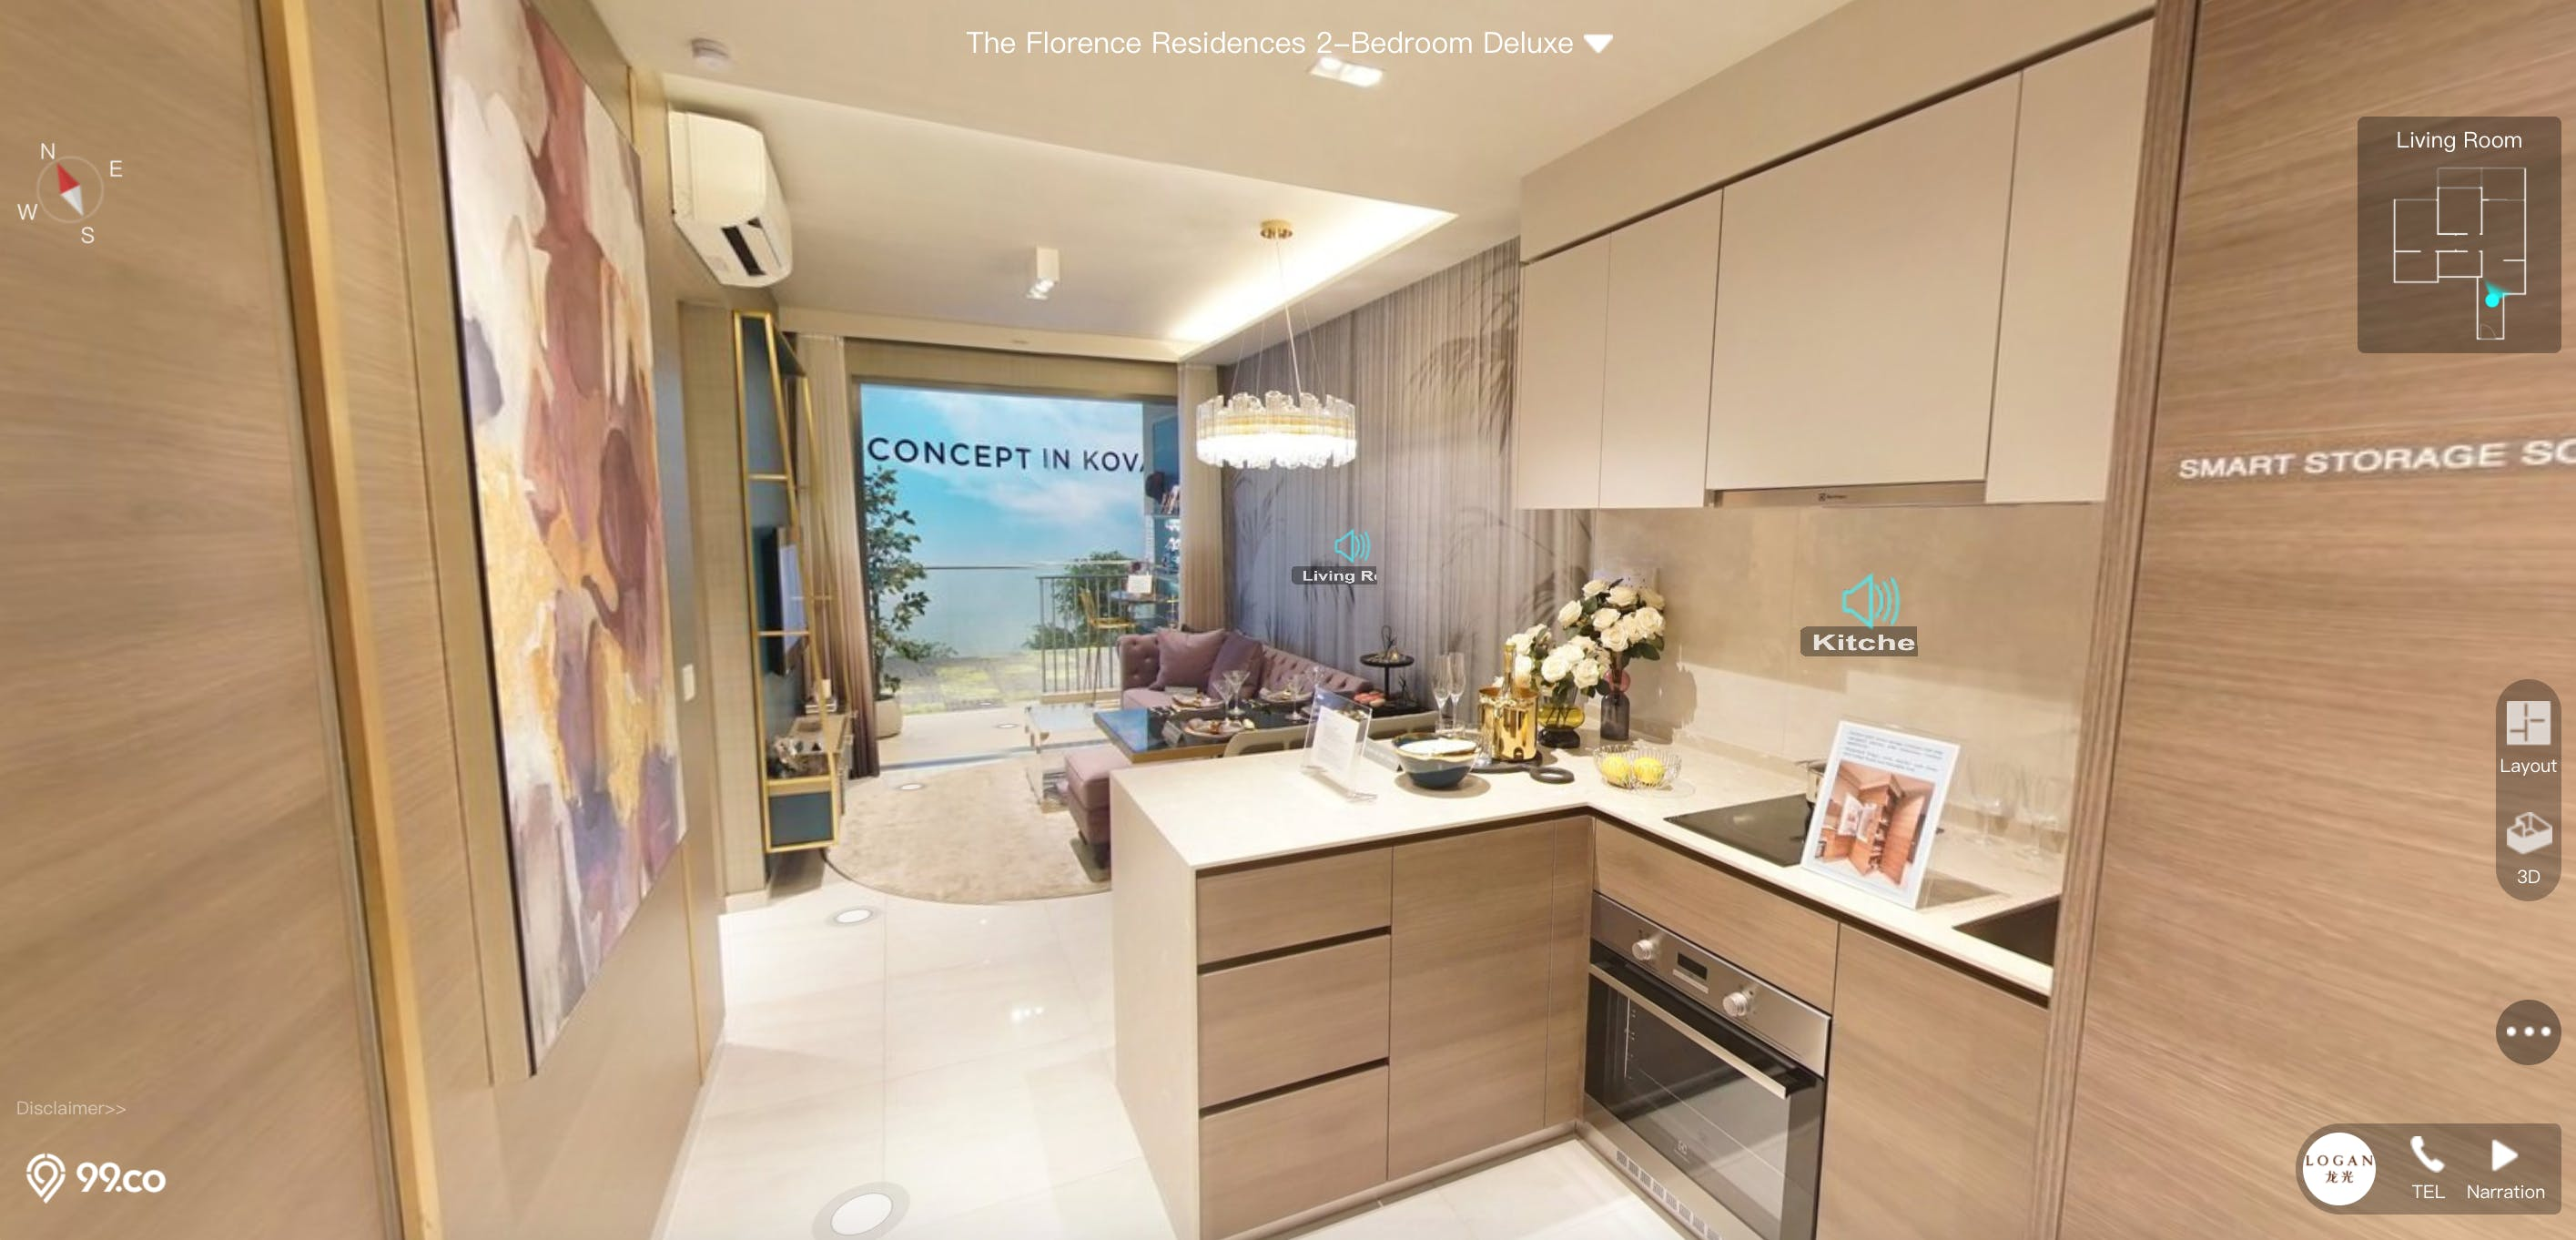 The Florence Residences 2 Bedroom Premium